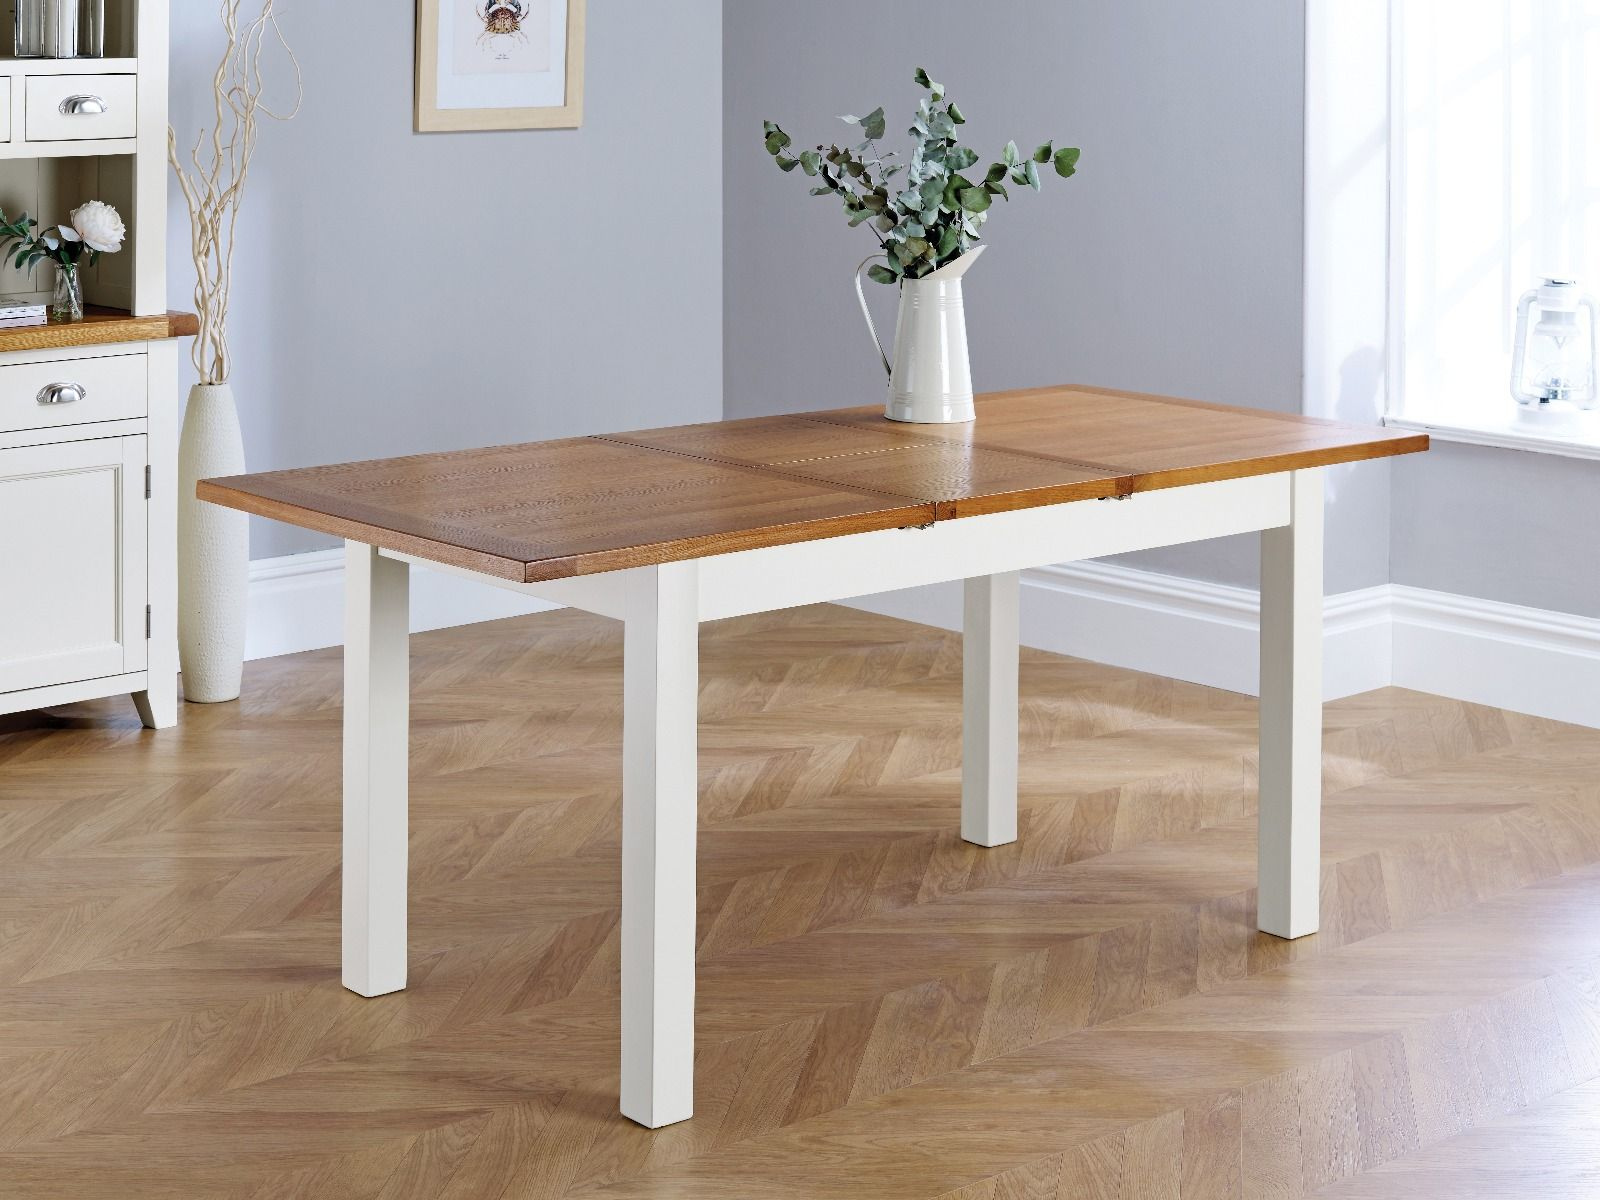 Country Oak Grey Painted 9cm Extendable Dining Table   SEPTEMBER MEGA DEAL